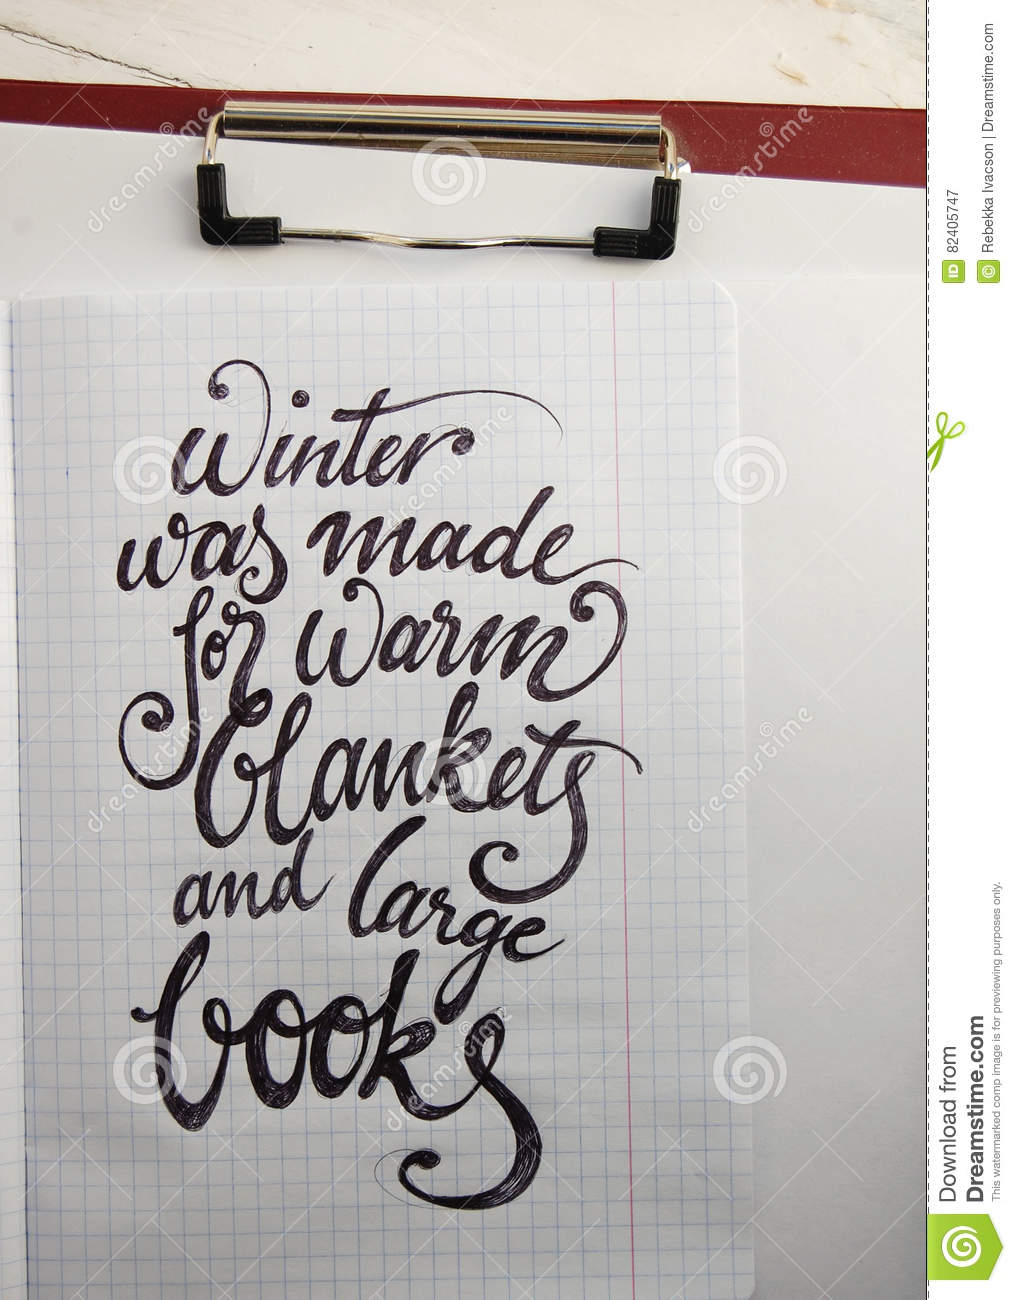 Winter Was Made For Warm Blankets Calligraphic Background